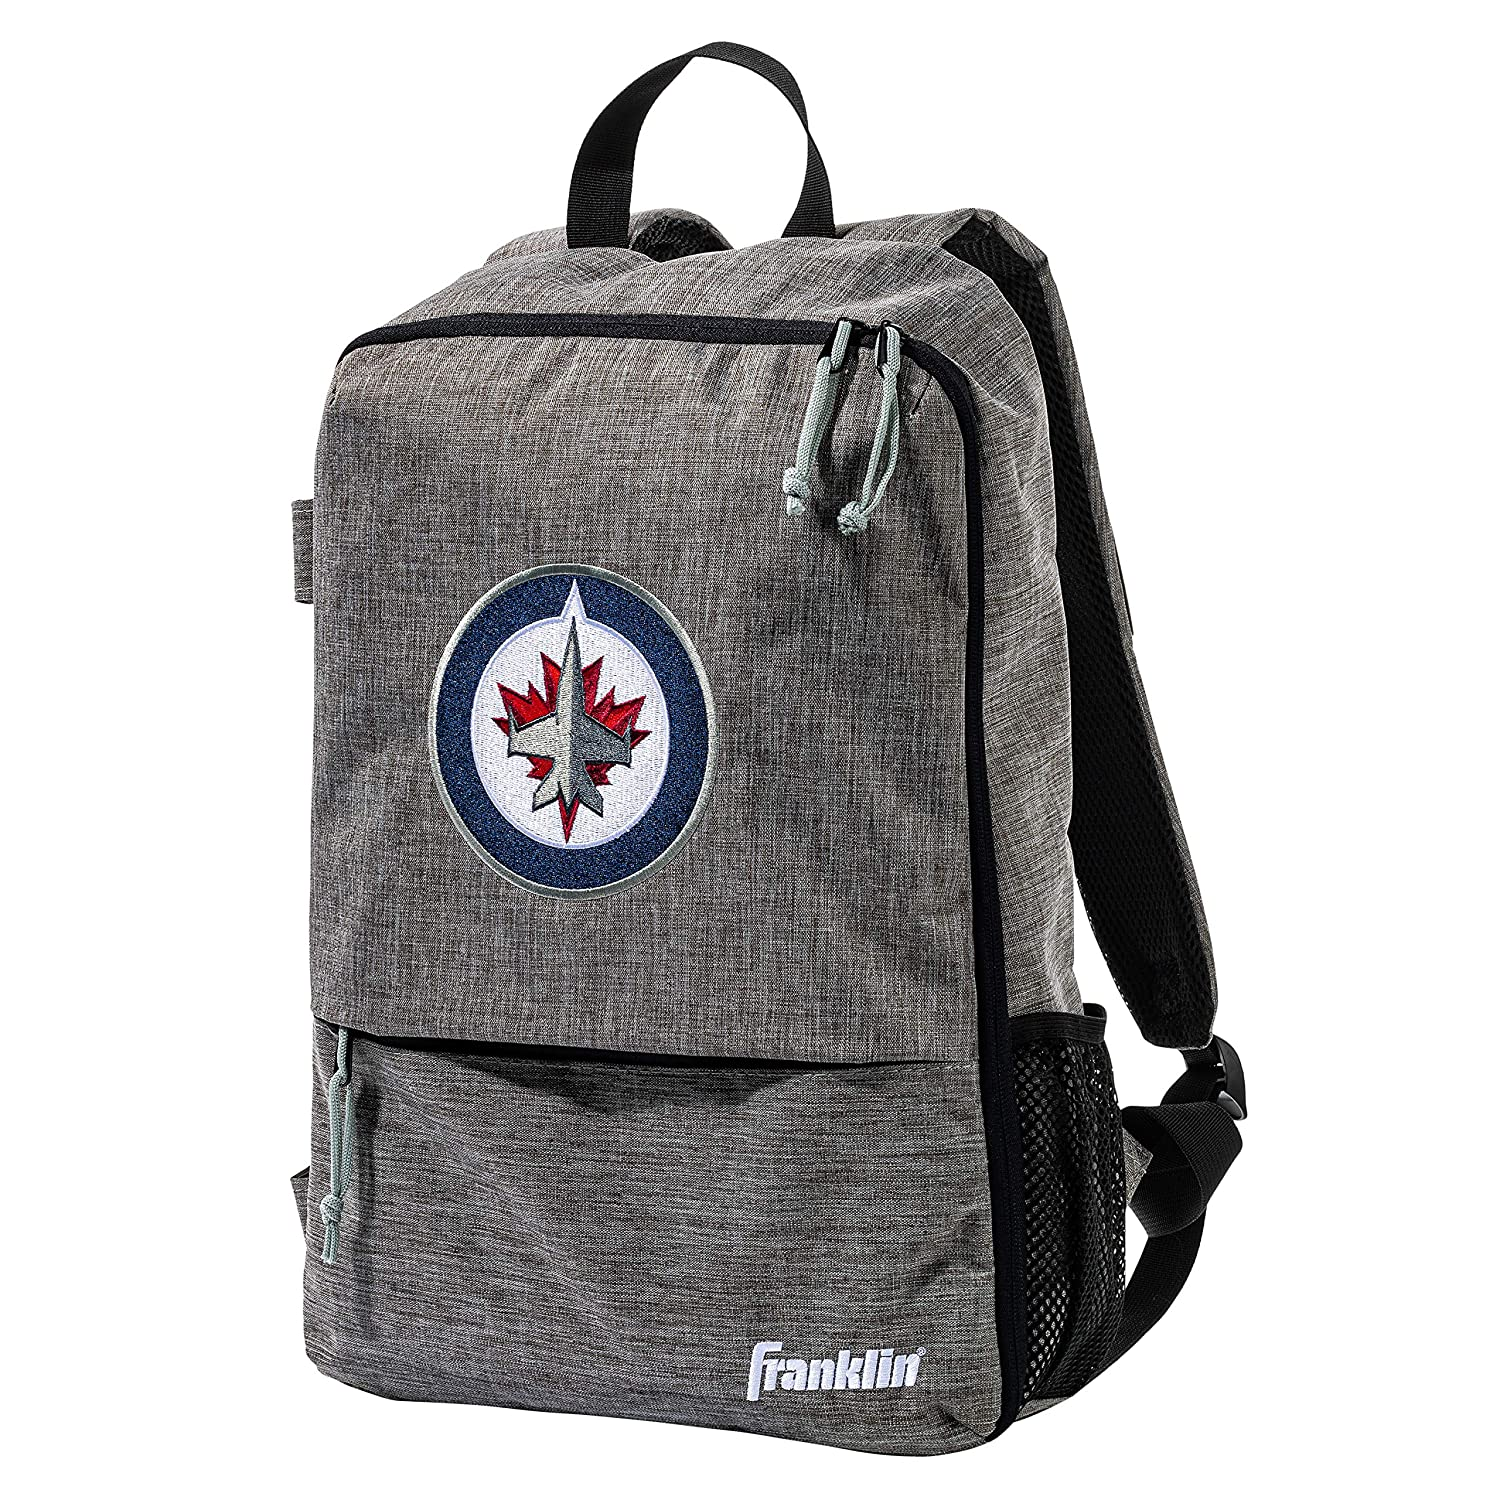 Official NHL Hockey Equipment Bags Heather Gray Hockey Backpack Franklin Sports Team Licensed Street Pack Backpack 18 x 12 x 4